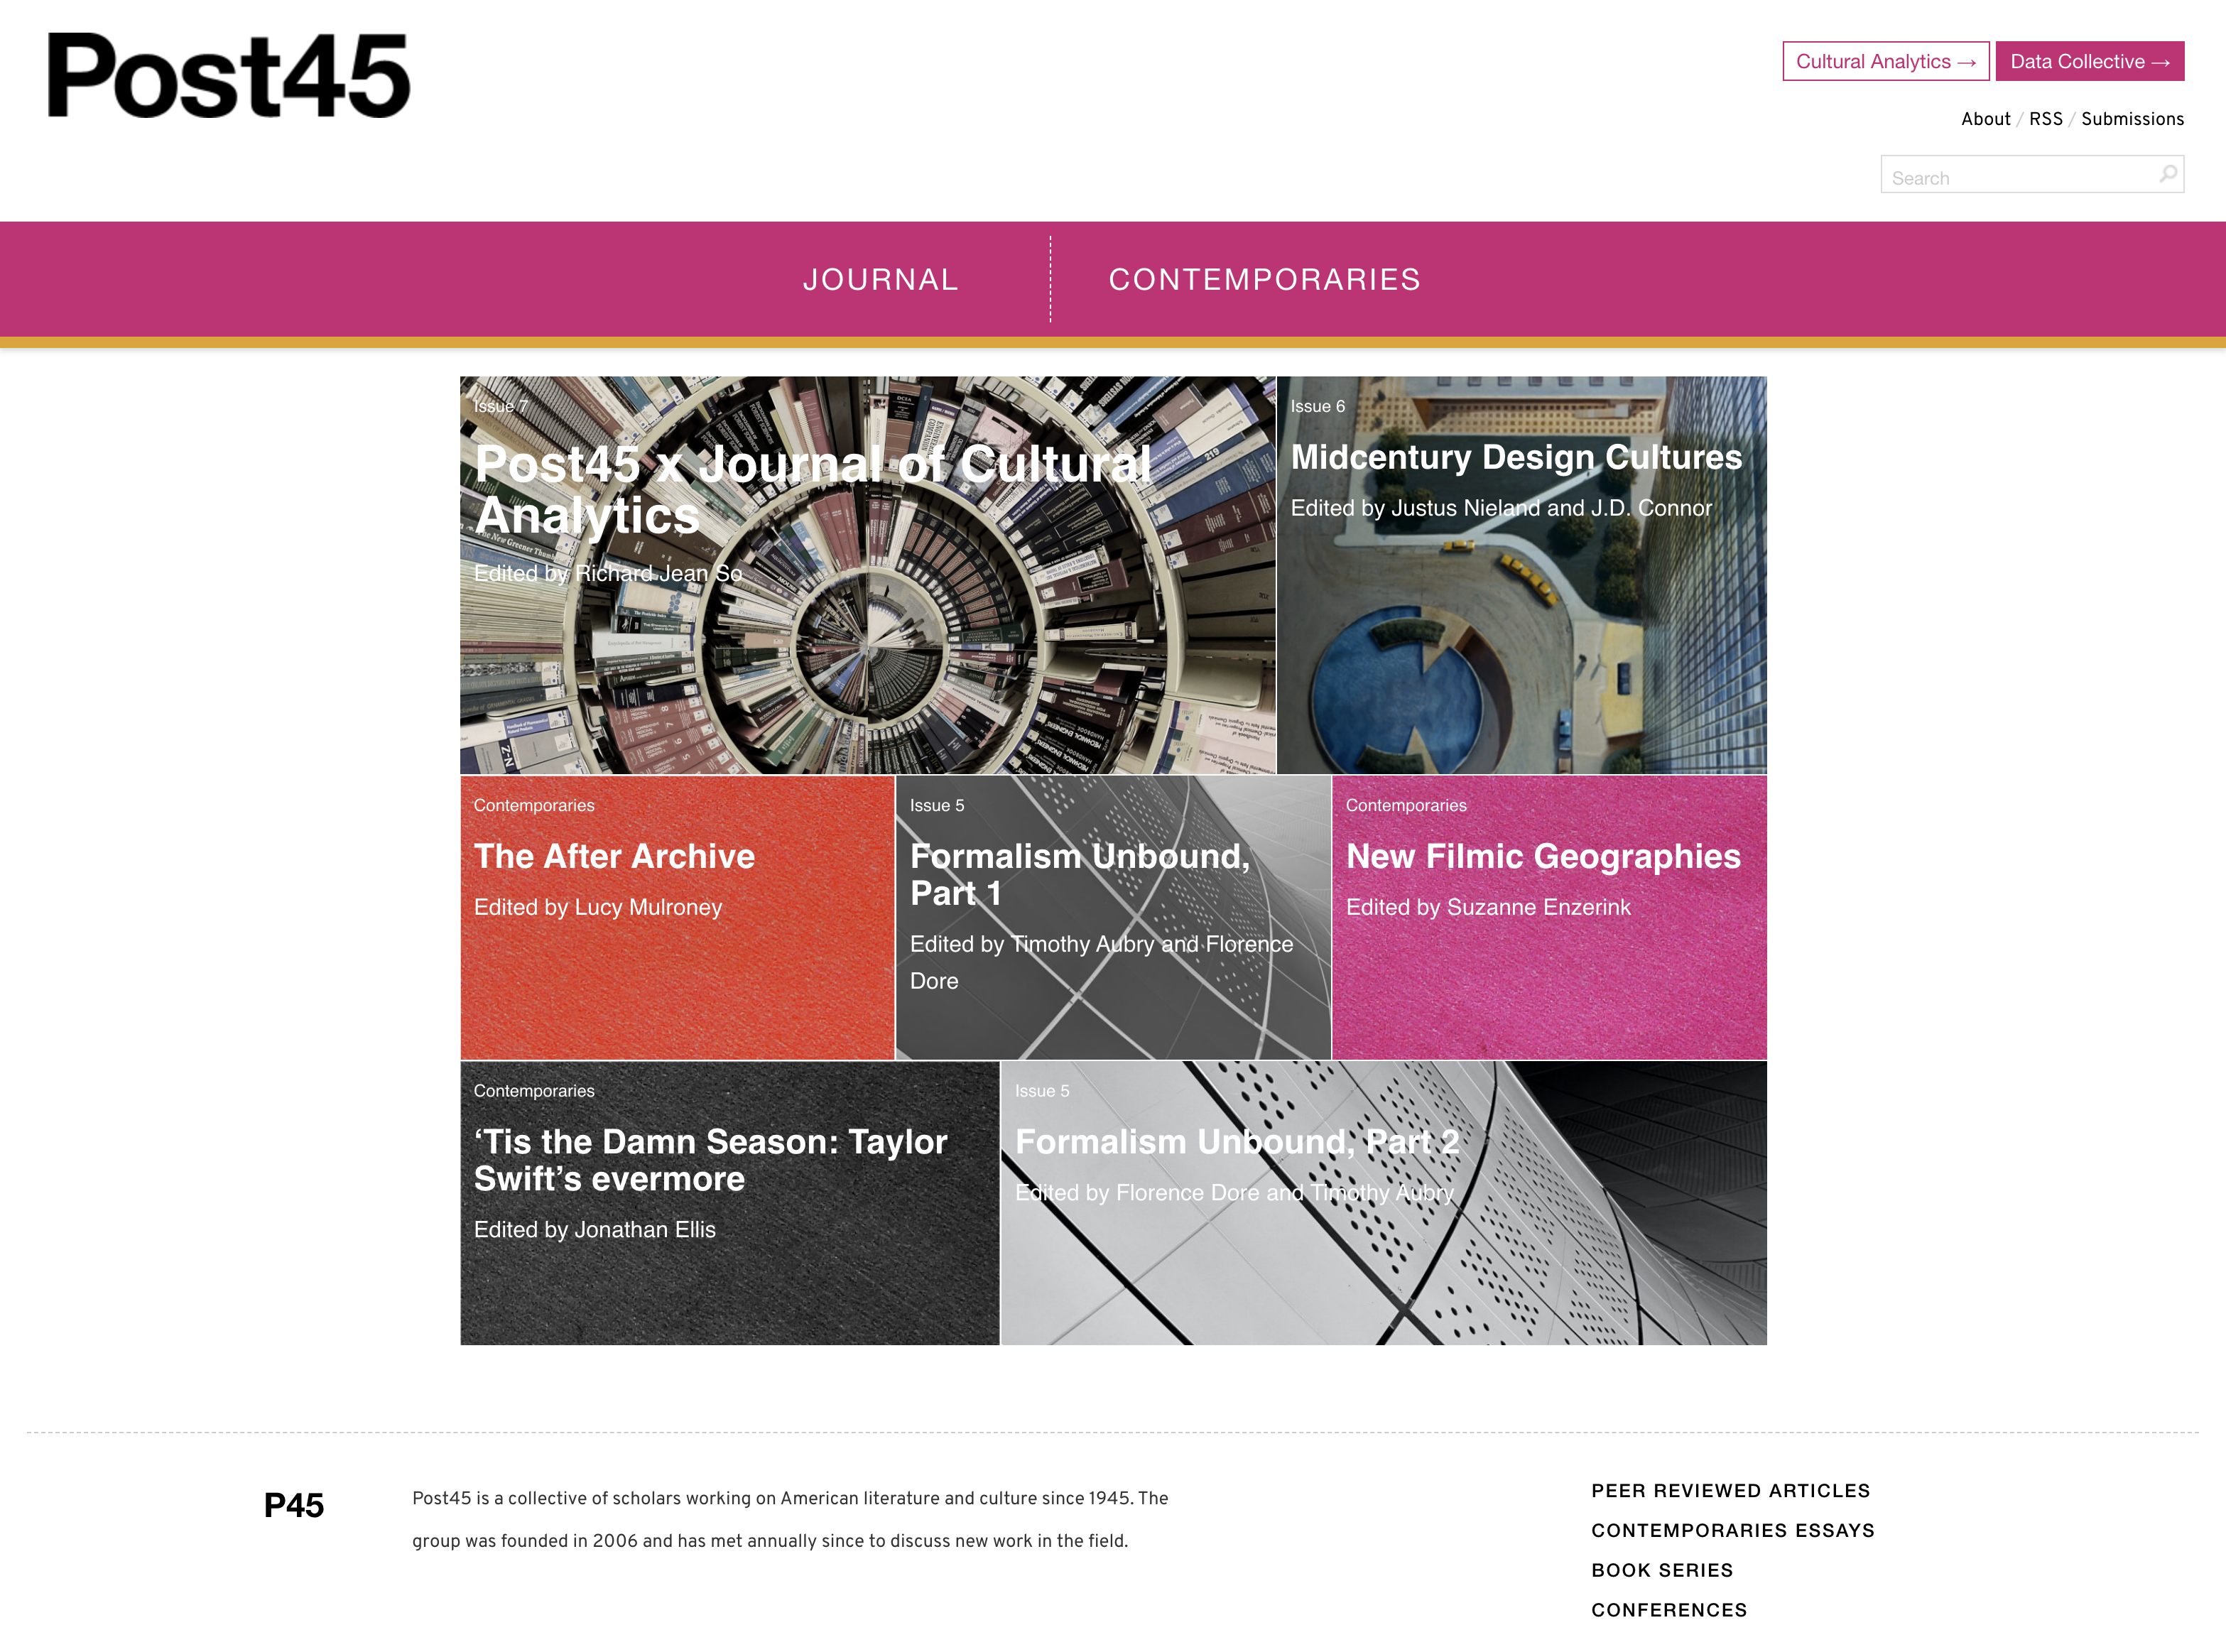 Webpage featuring Post45 journal title at top in thick black font, dark pink section header, and image blocks for journal issues.